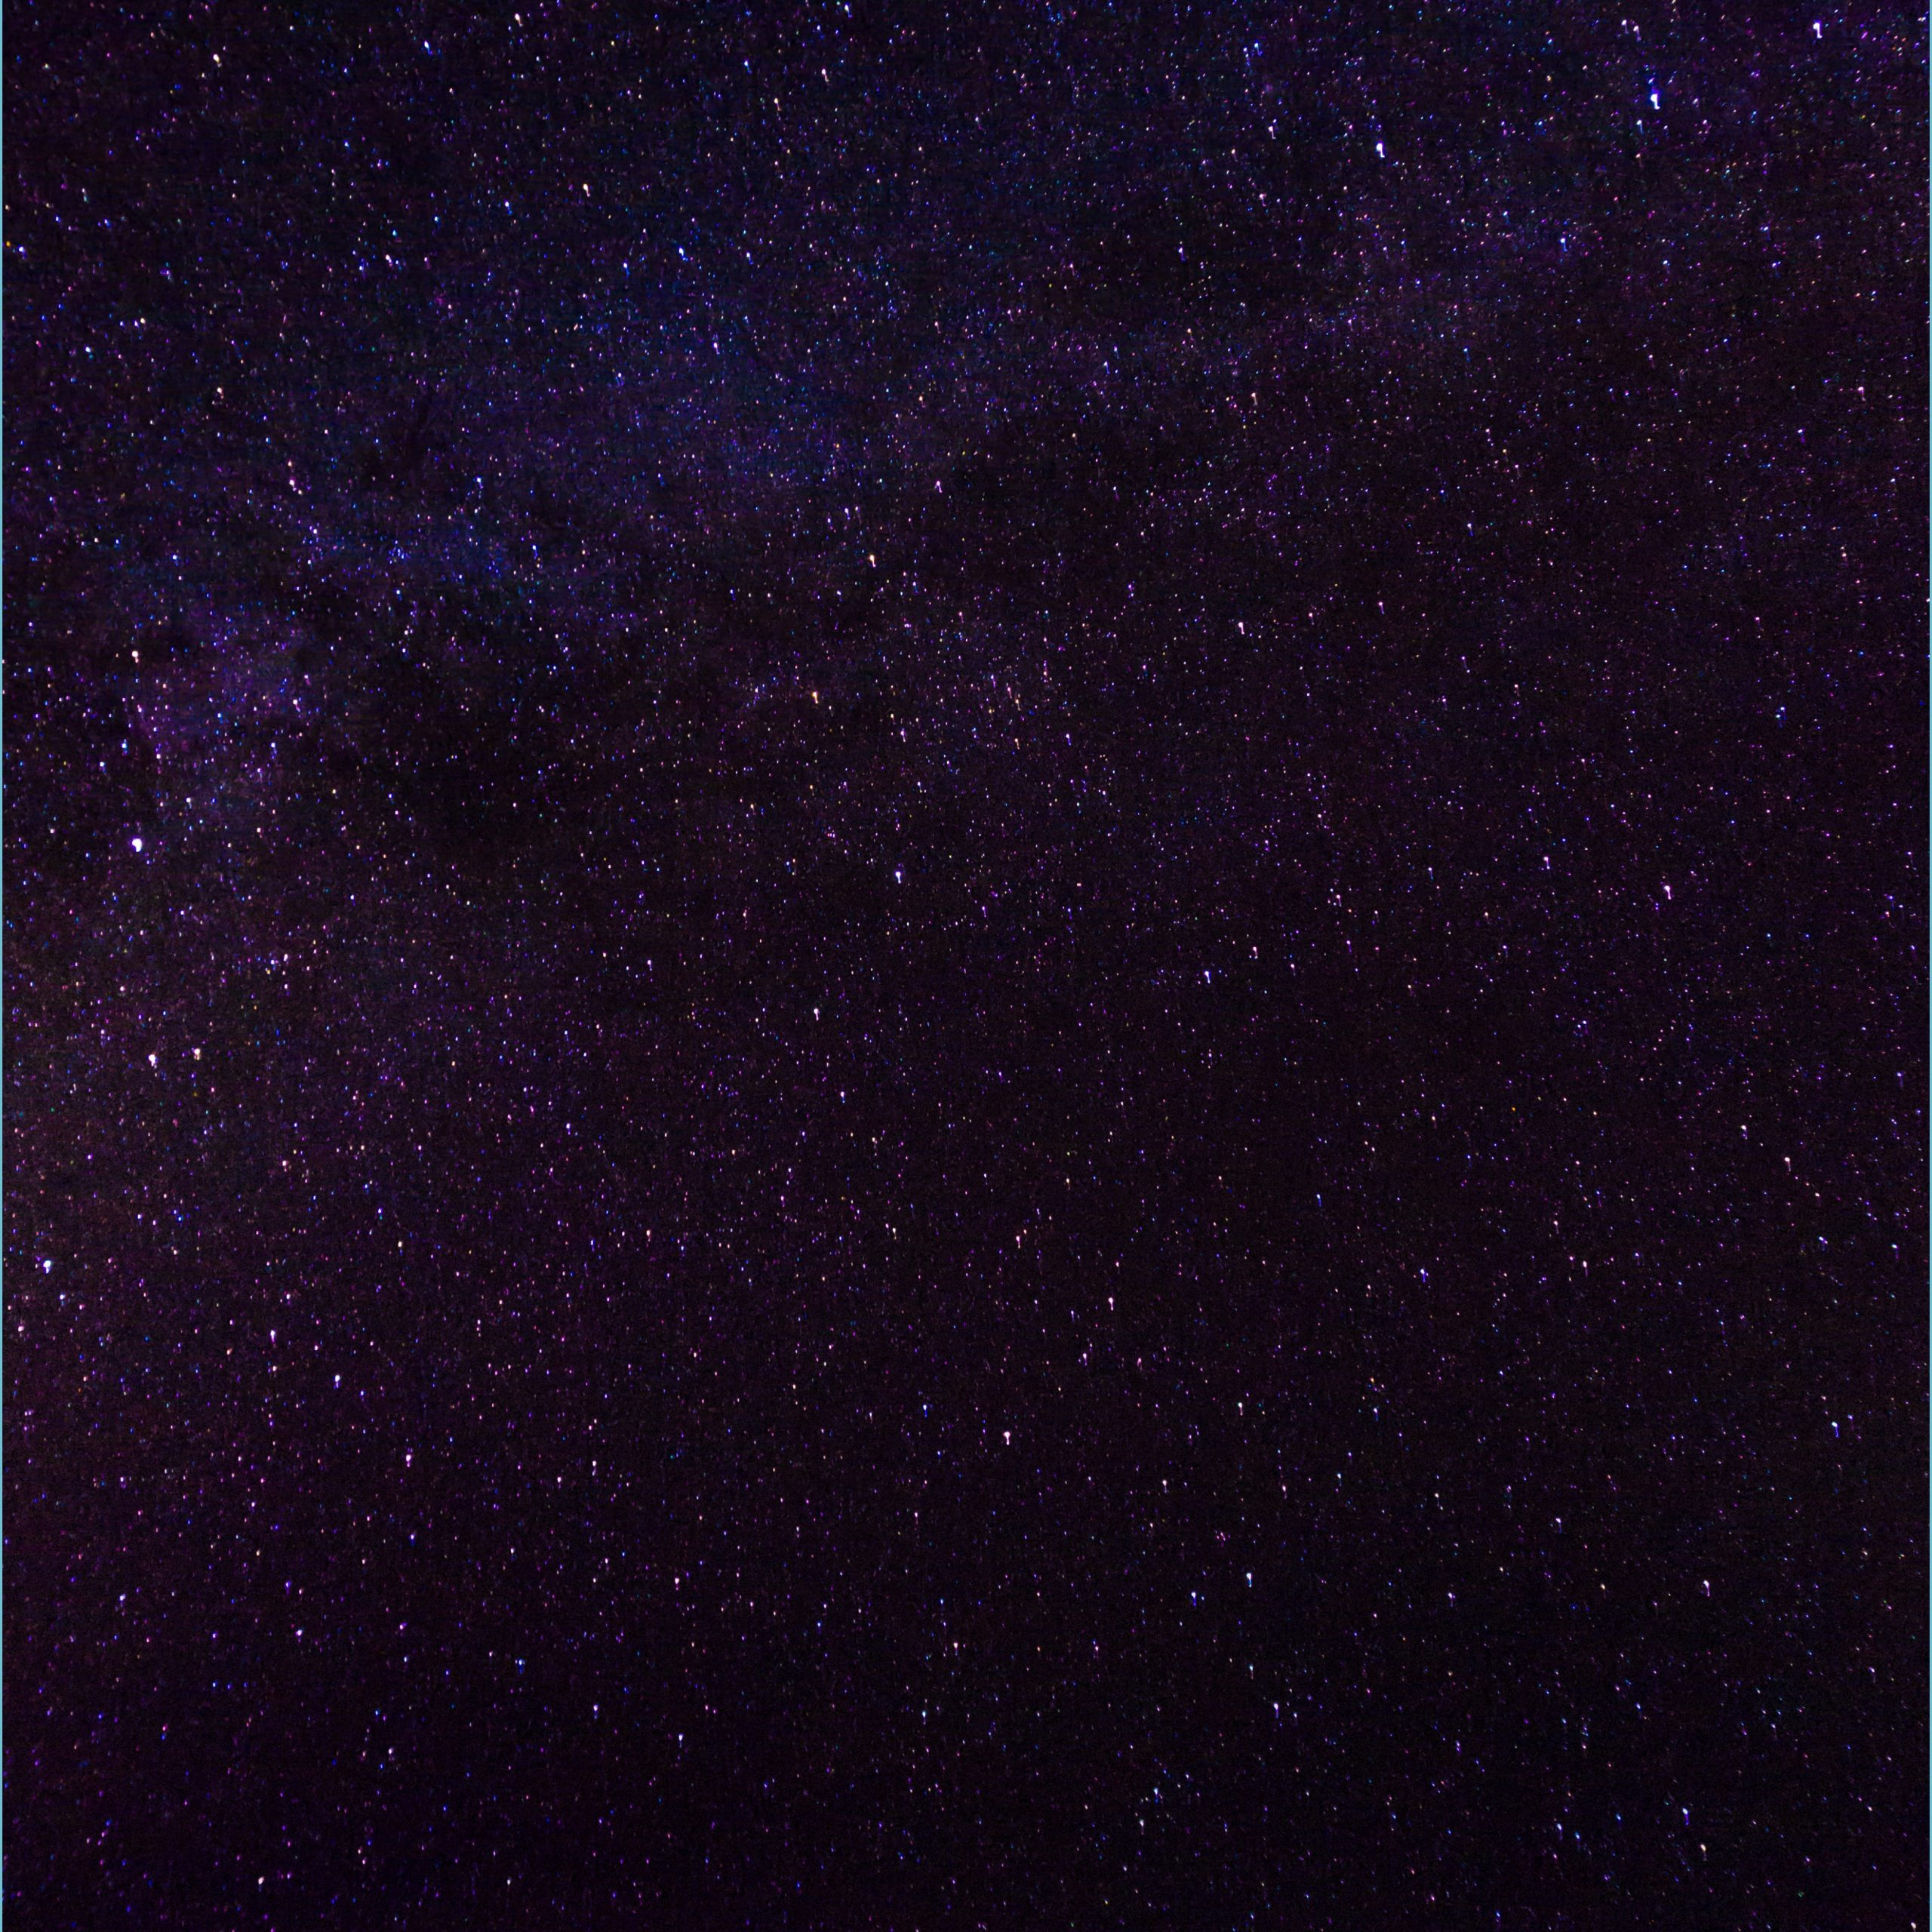 Iphone Black Galaxy Background   10x10   Download HD Wallpaper 2560x2560